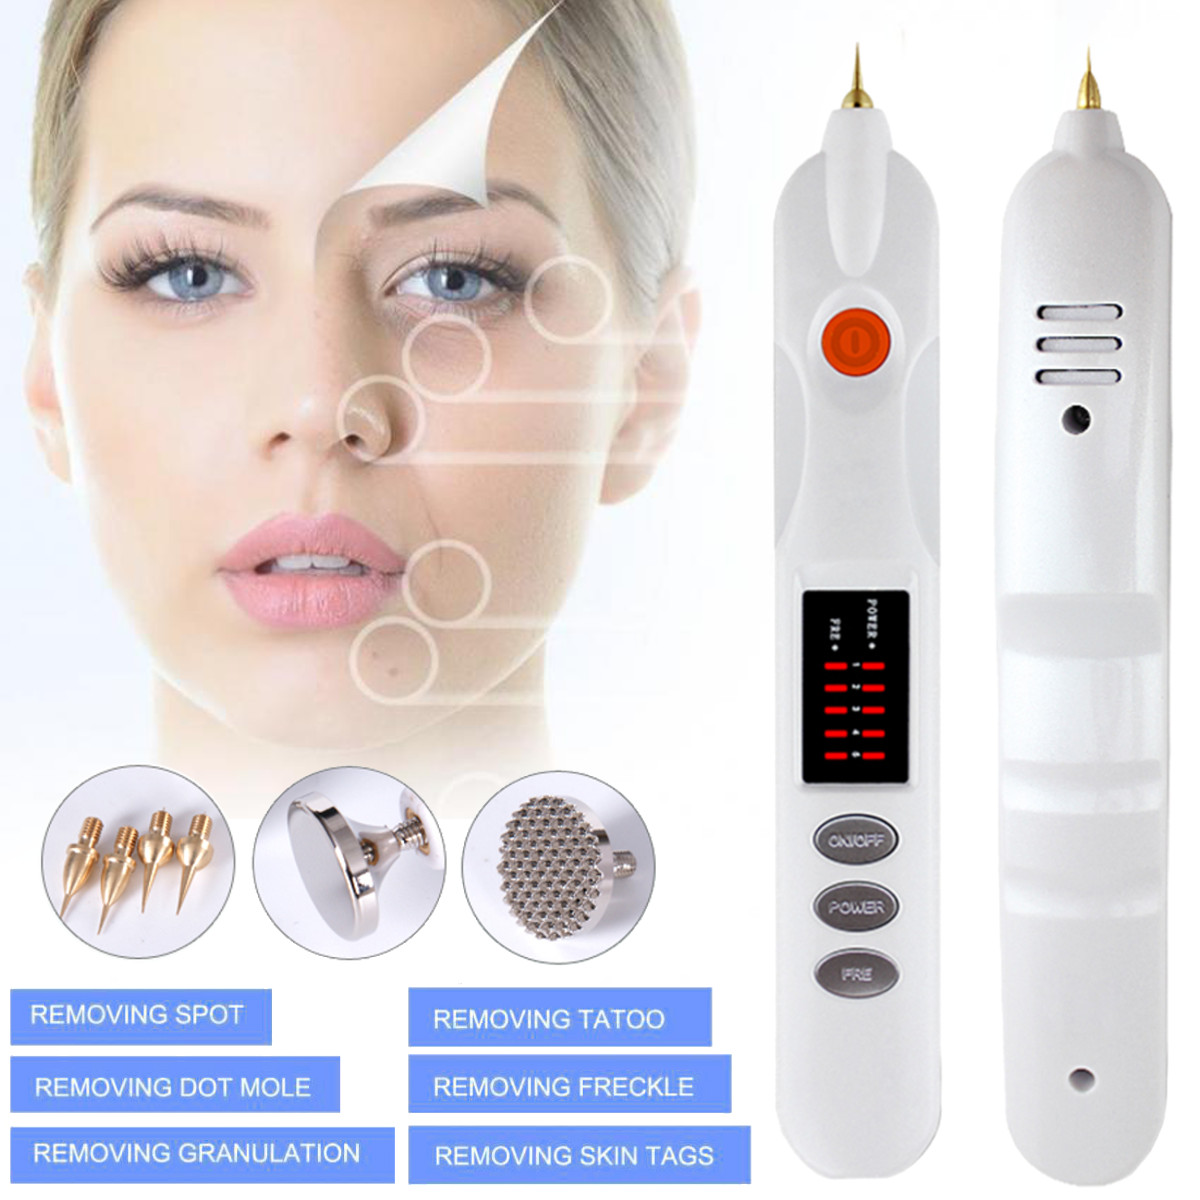 New Laser Plasma Pen Facial Skin Dark Spot Remover Mole Tattoo Removal Machine Face Blackhead Blemish Remover Personal Skin CareNew Laser Plasma Pen Facial Skin Dark Spot Remover Mole Tattoo Removal Machine Face Blackhead Blemish Remover Personal Skin Care